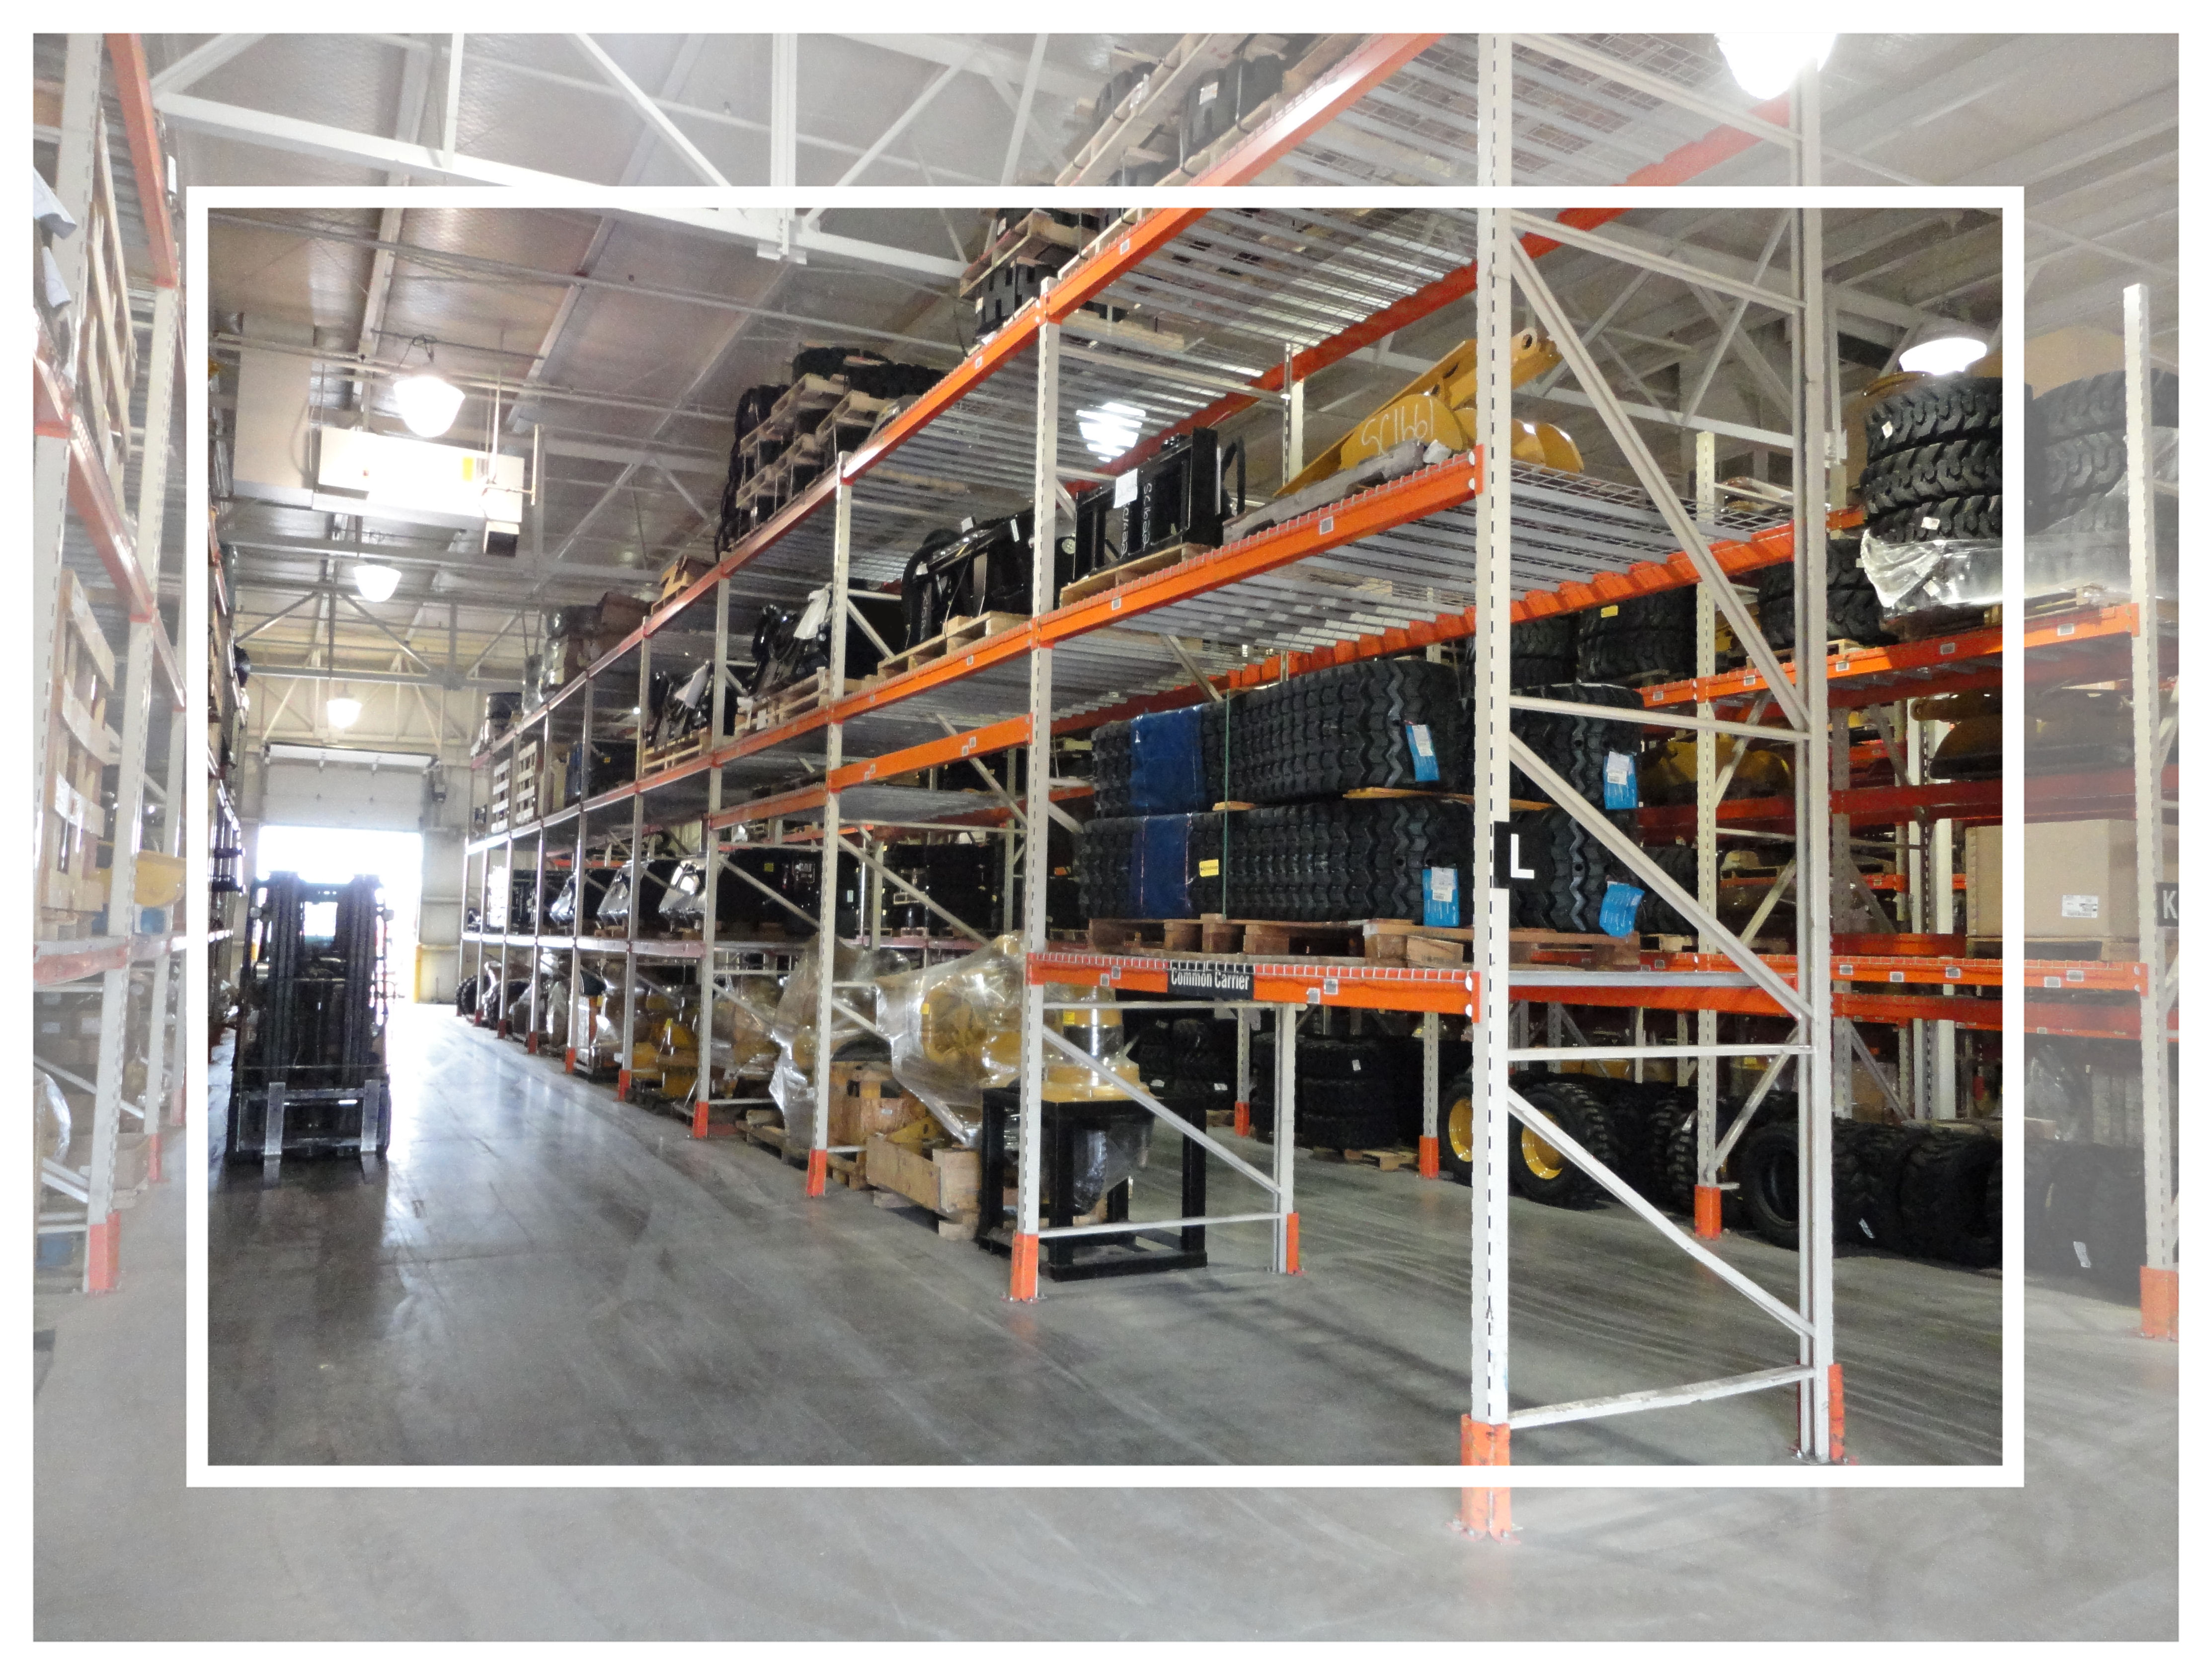 spartan-equipment-warehouse-2.jpg